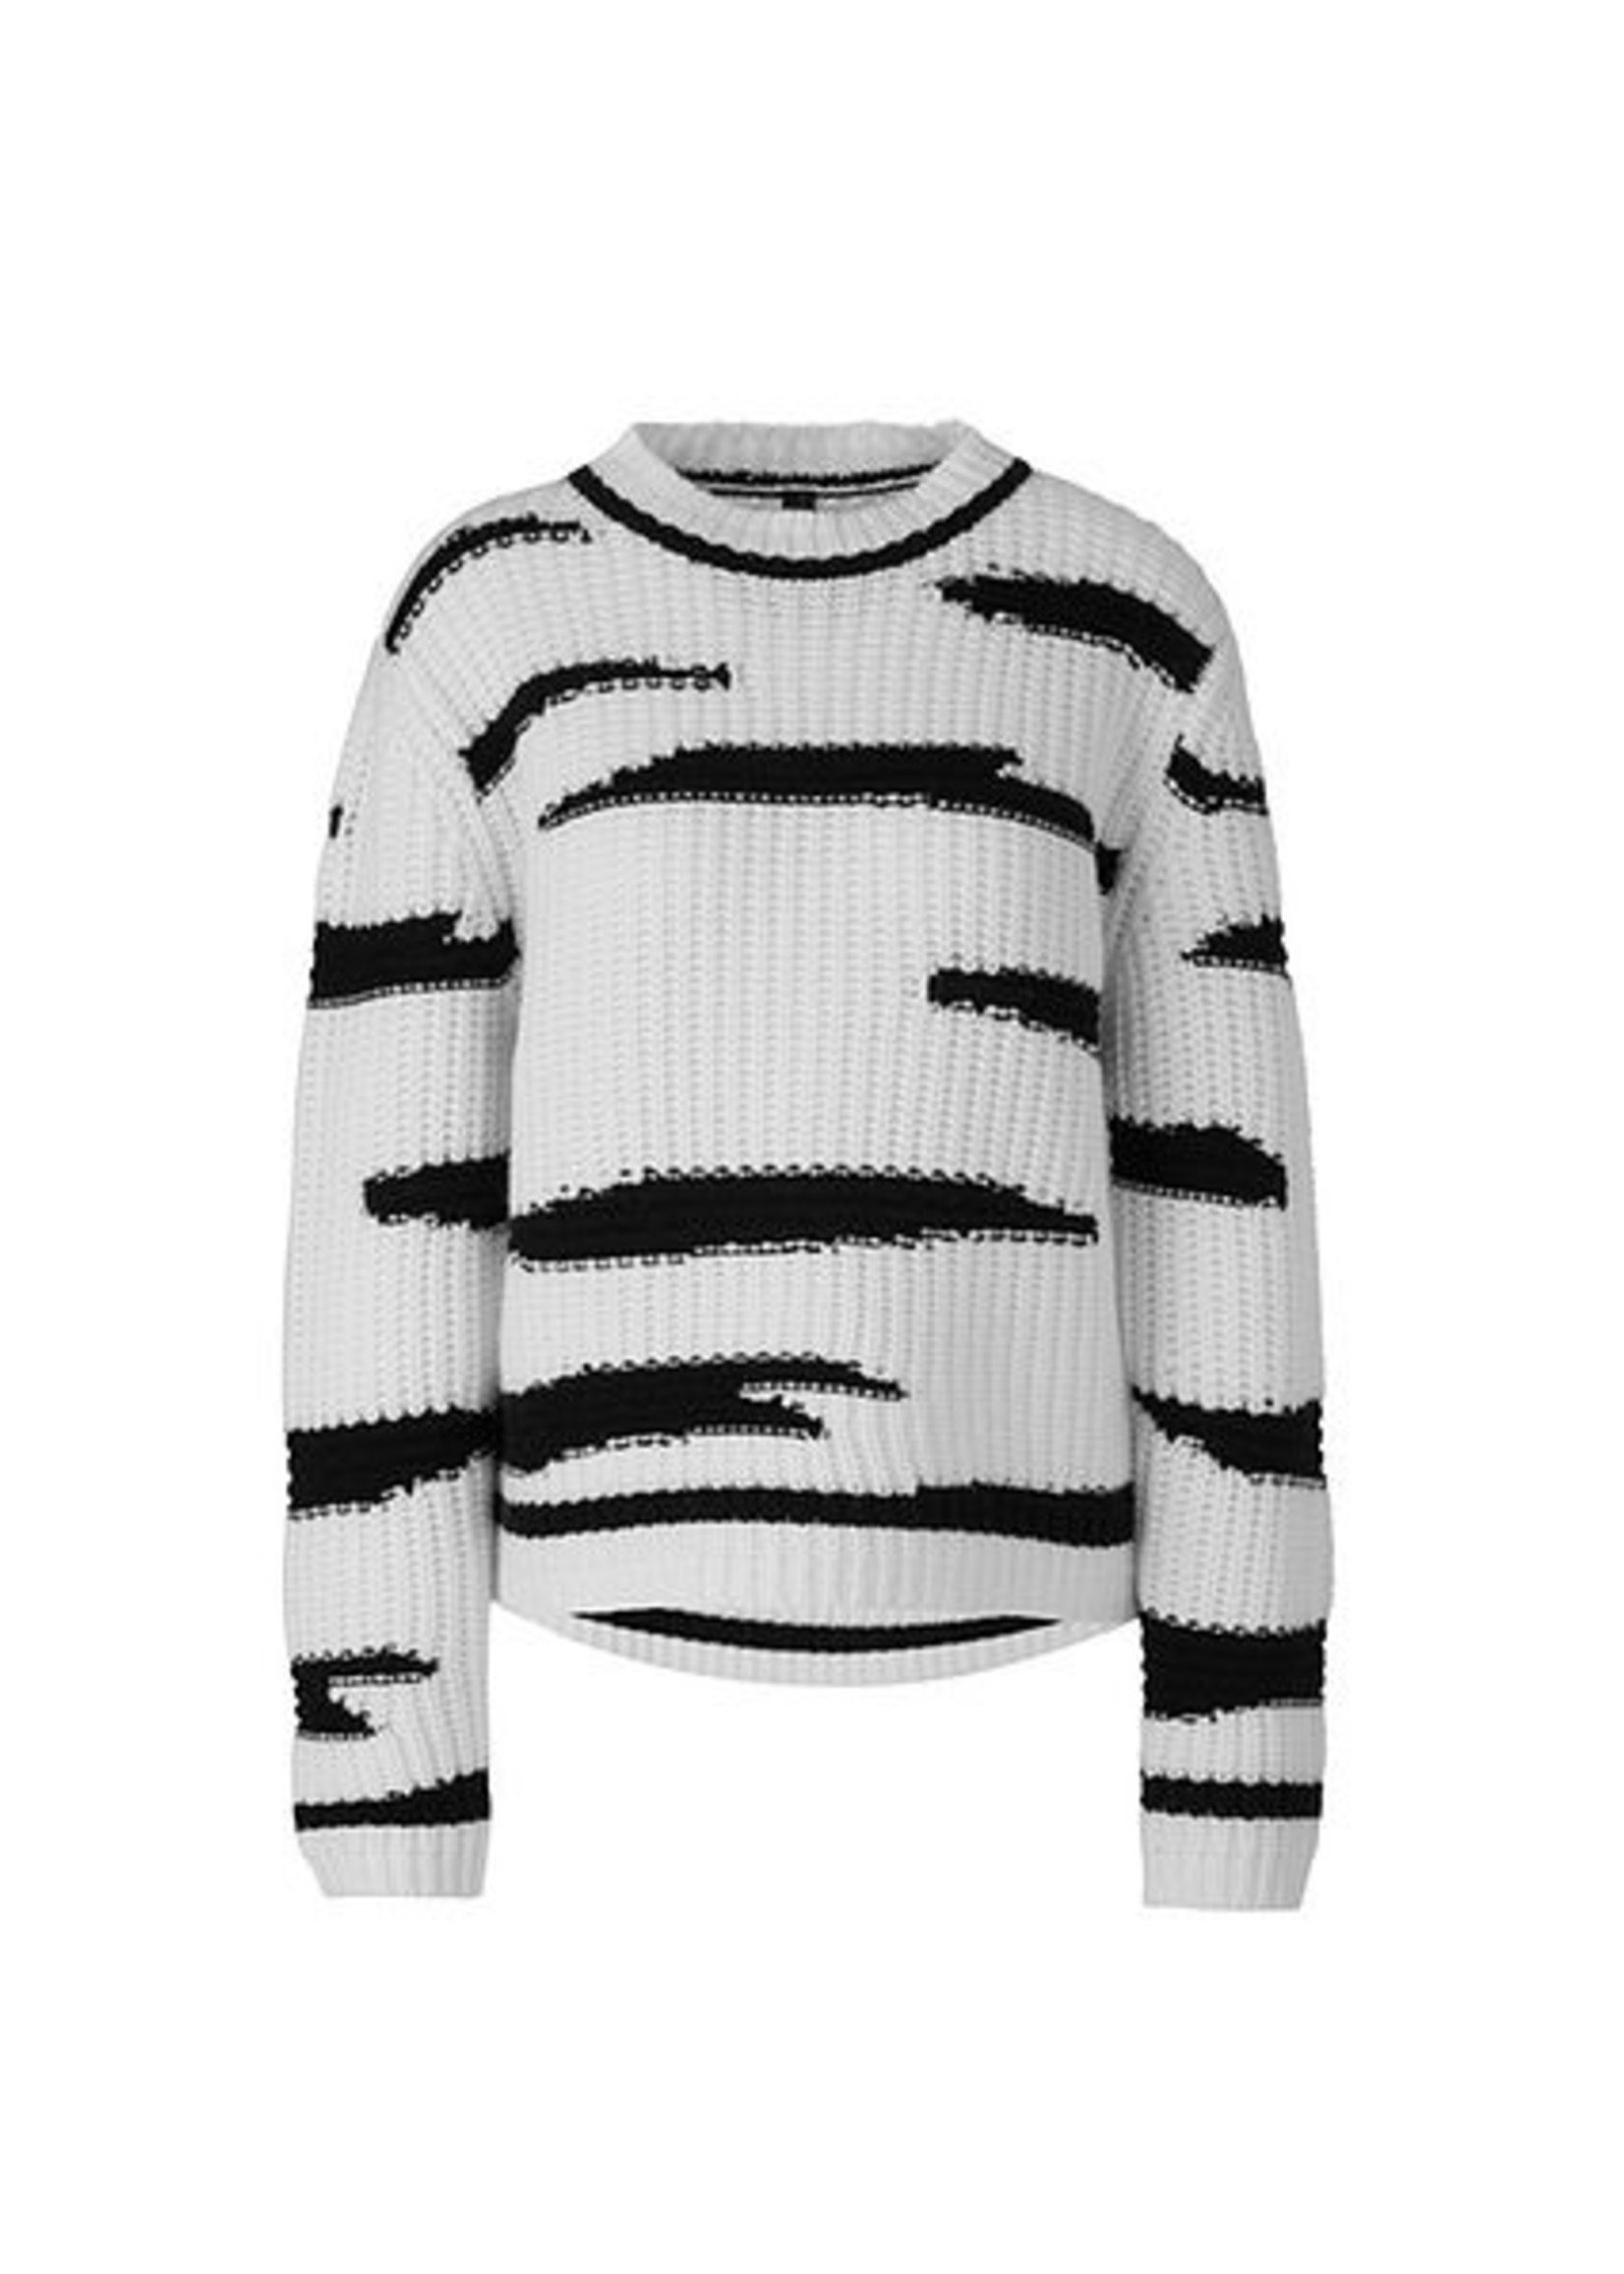 Marccain Sports Sweater RS 41.43 M84 white and black